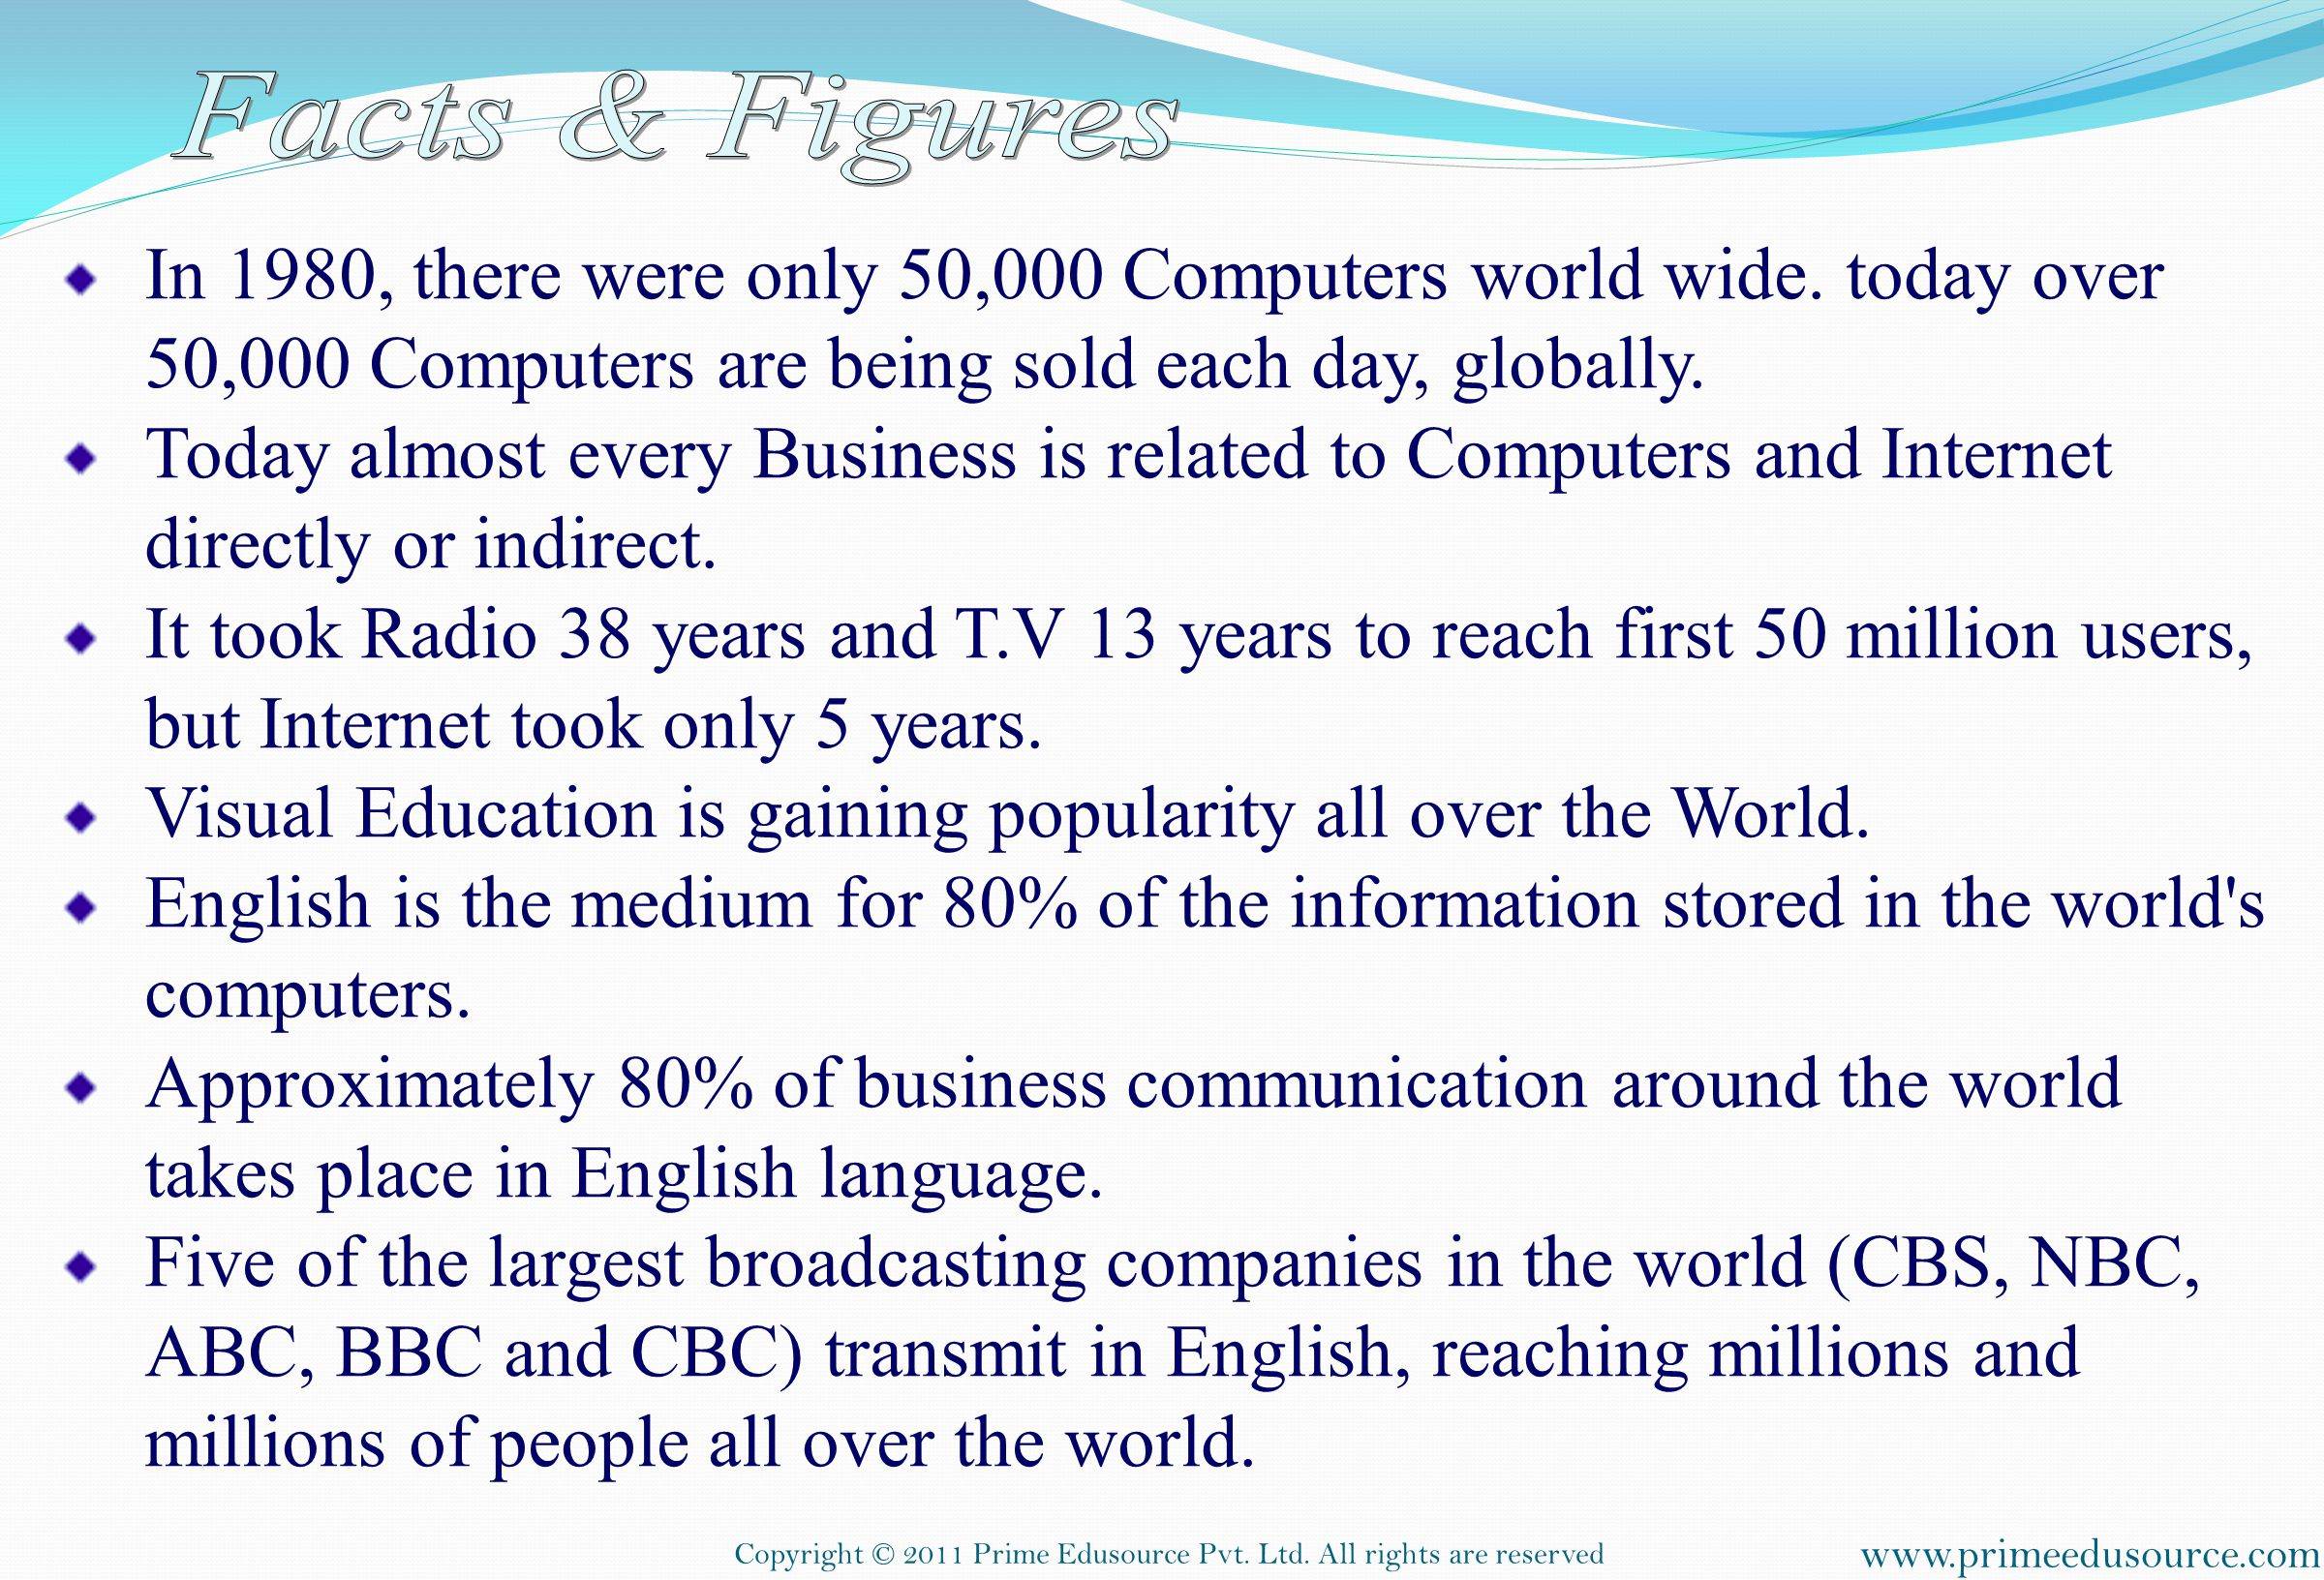 Facts & Figures In 1980, there were only 50,000 Computers world wide. today over 50,000 Computers are being sold each day, globally.